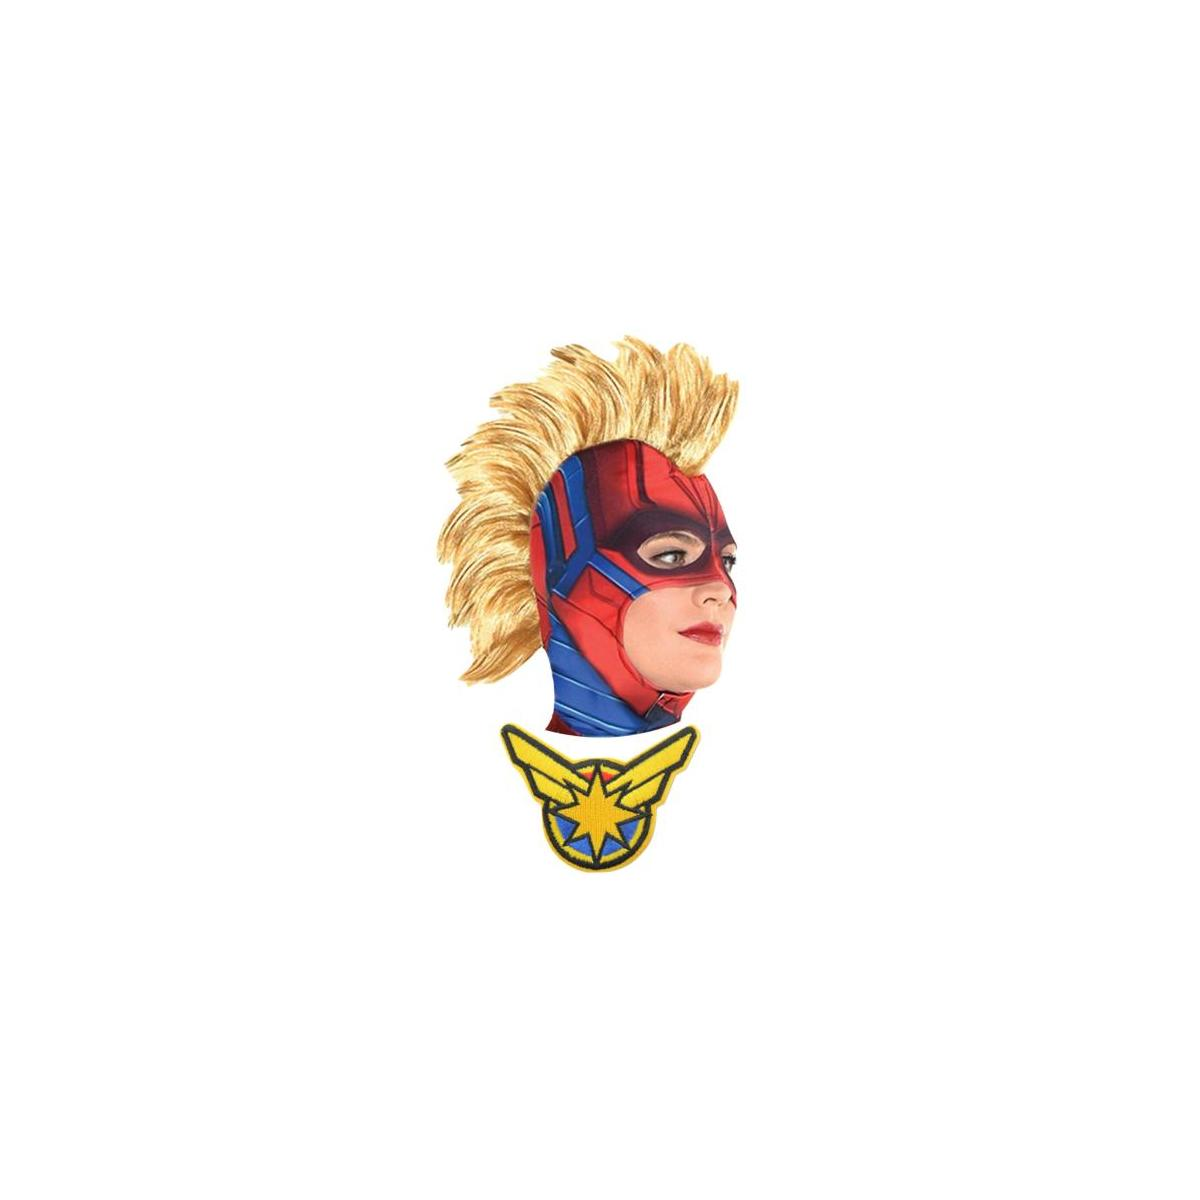 Captain Marvel Carol Danvers Endgame Movie Mask Brie Larson Mohawk Wig Cosplay Costume Adults Women's Girls Kids w/Patch